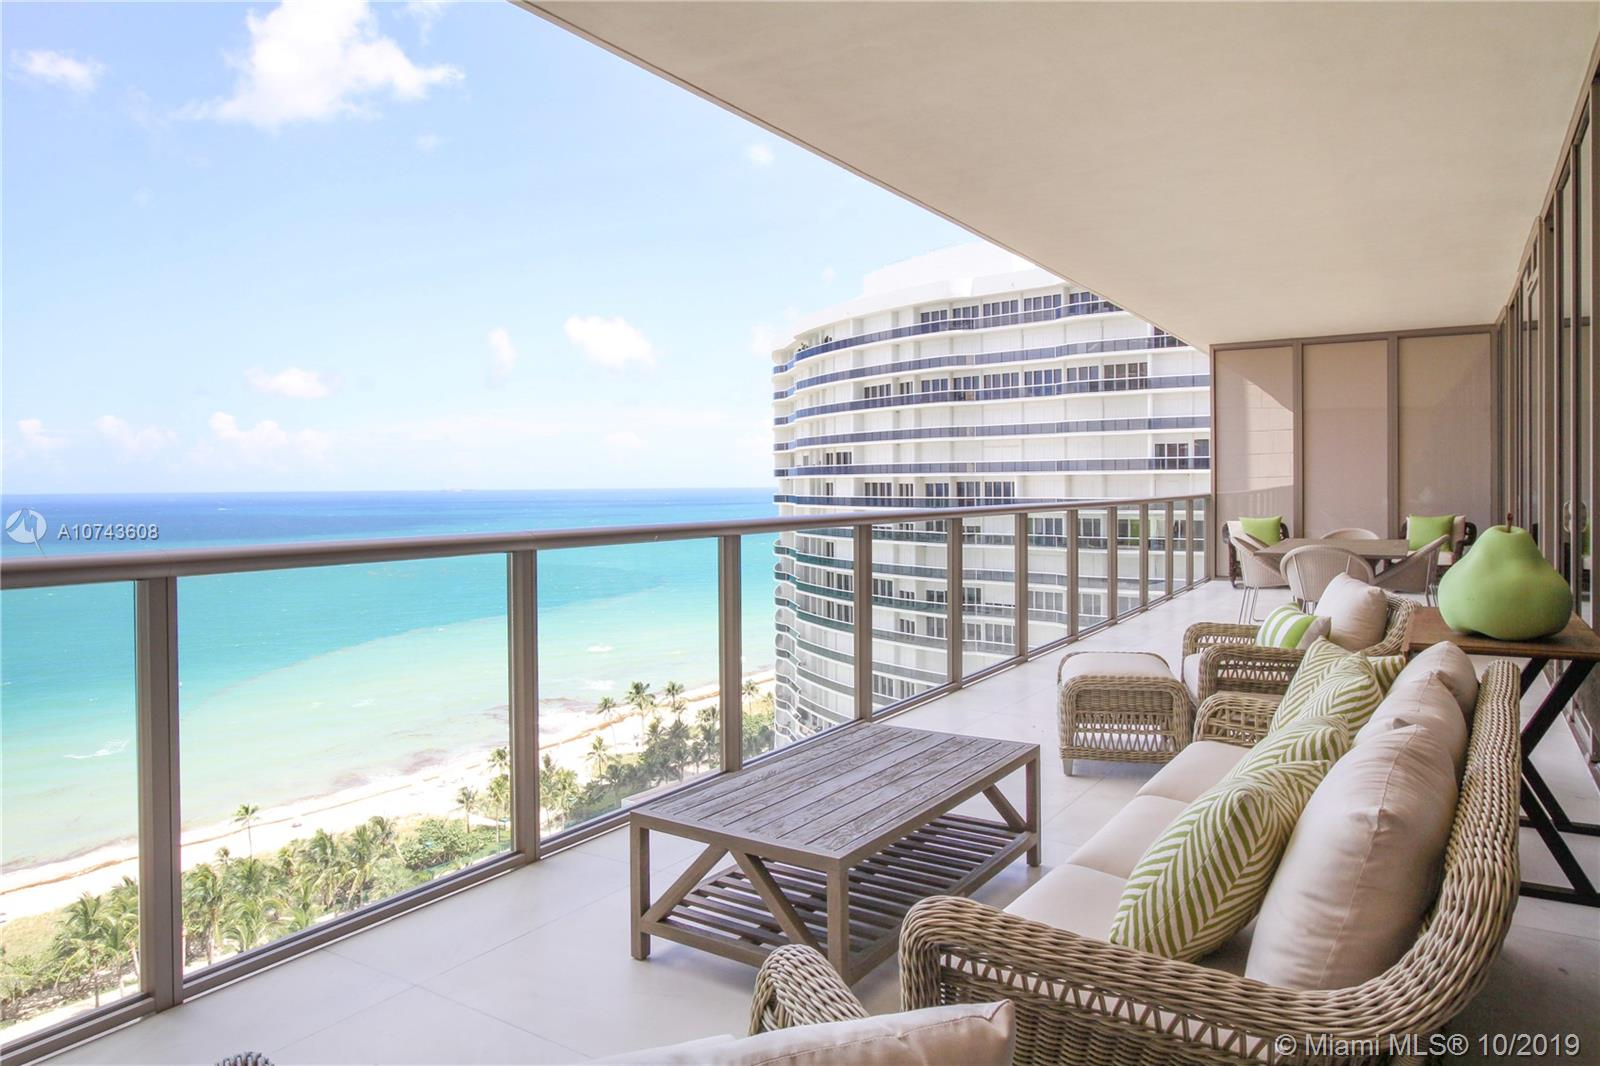 Spectacular Oceanfront residence with breathtaking, unobstructed views of the Atlantic Ocean, intracostal and city skyline.